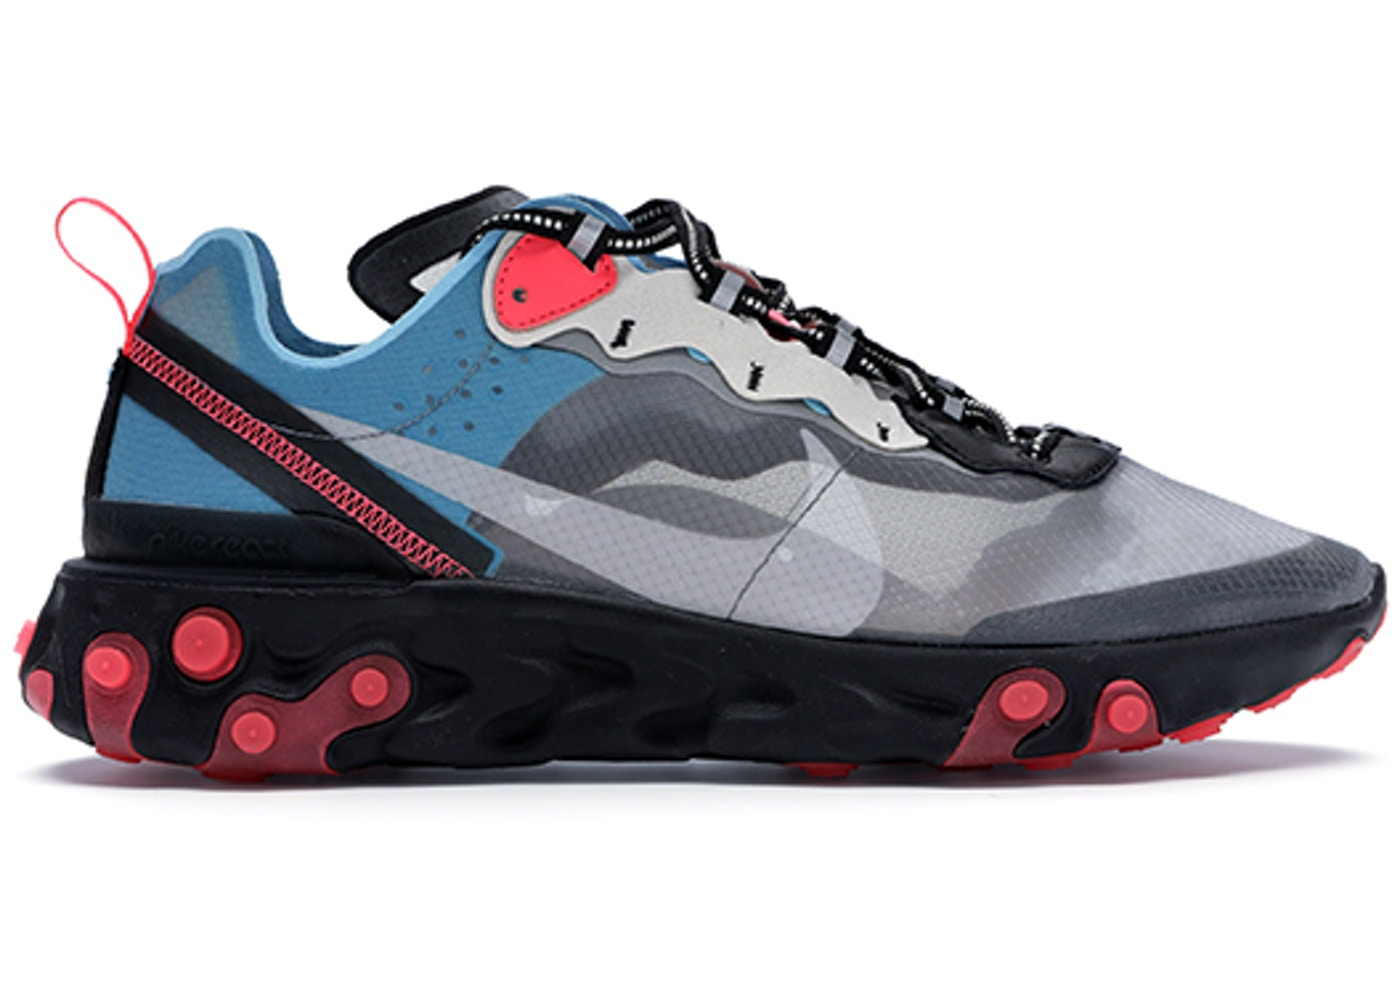 c1782739e2c Nike React Element 87 Blue Chill Solar Red - AQ1090-006